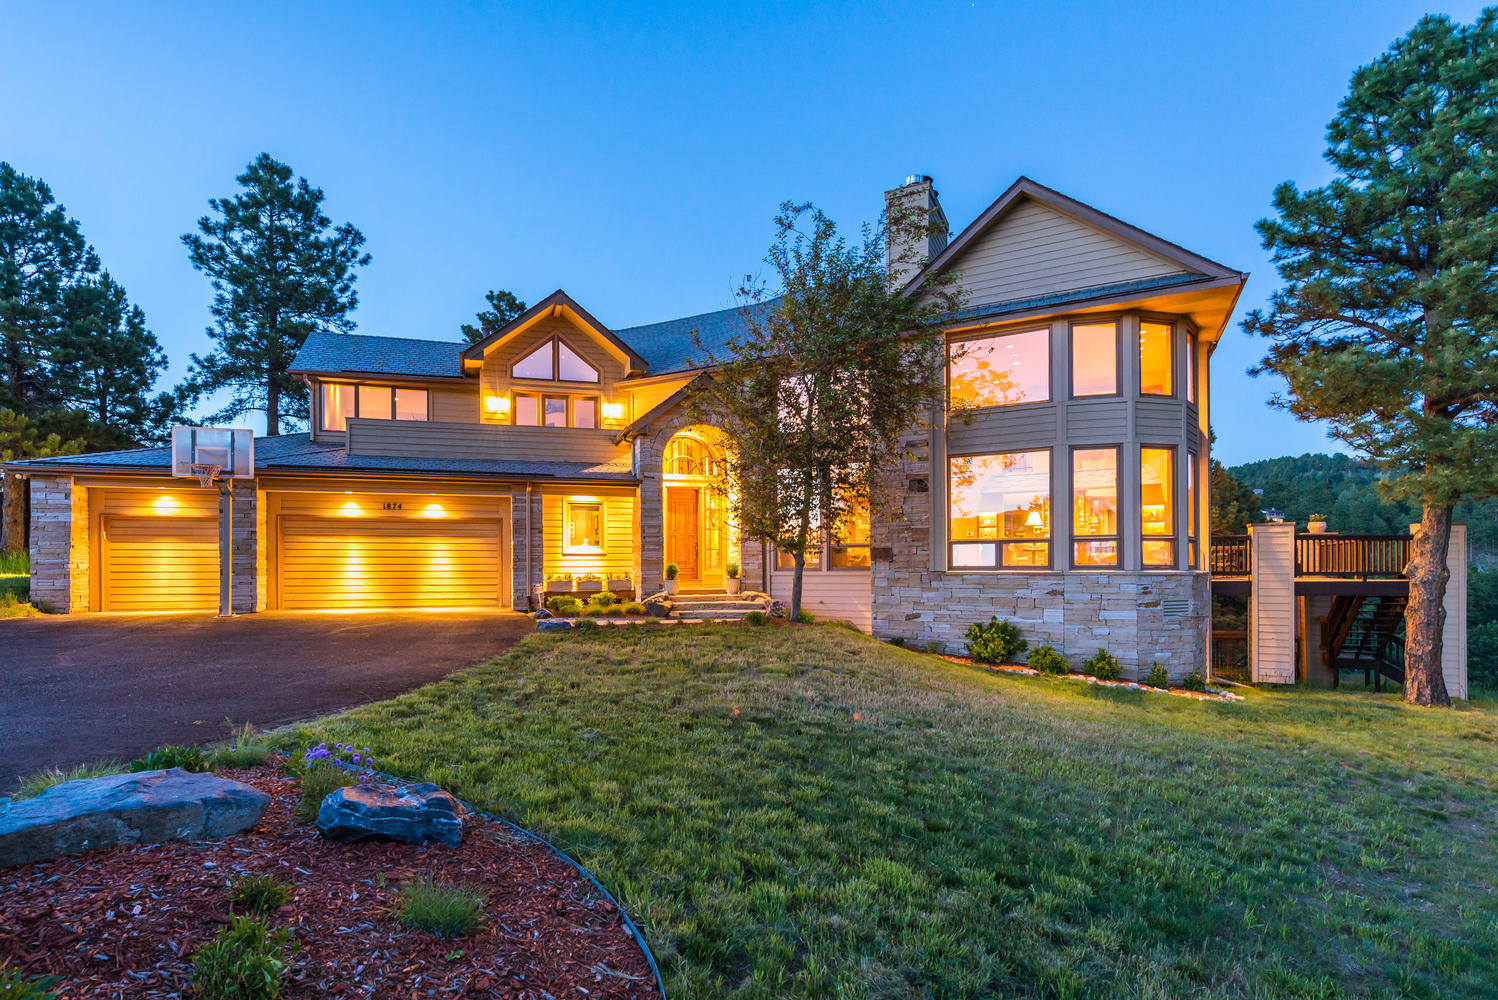 Single Family Home for Sale at Mount Evans Views in Genesee 1874 South Foothills Drive Golden, Colorado, 80401 United States